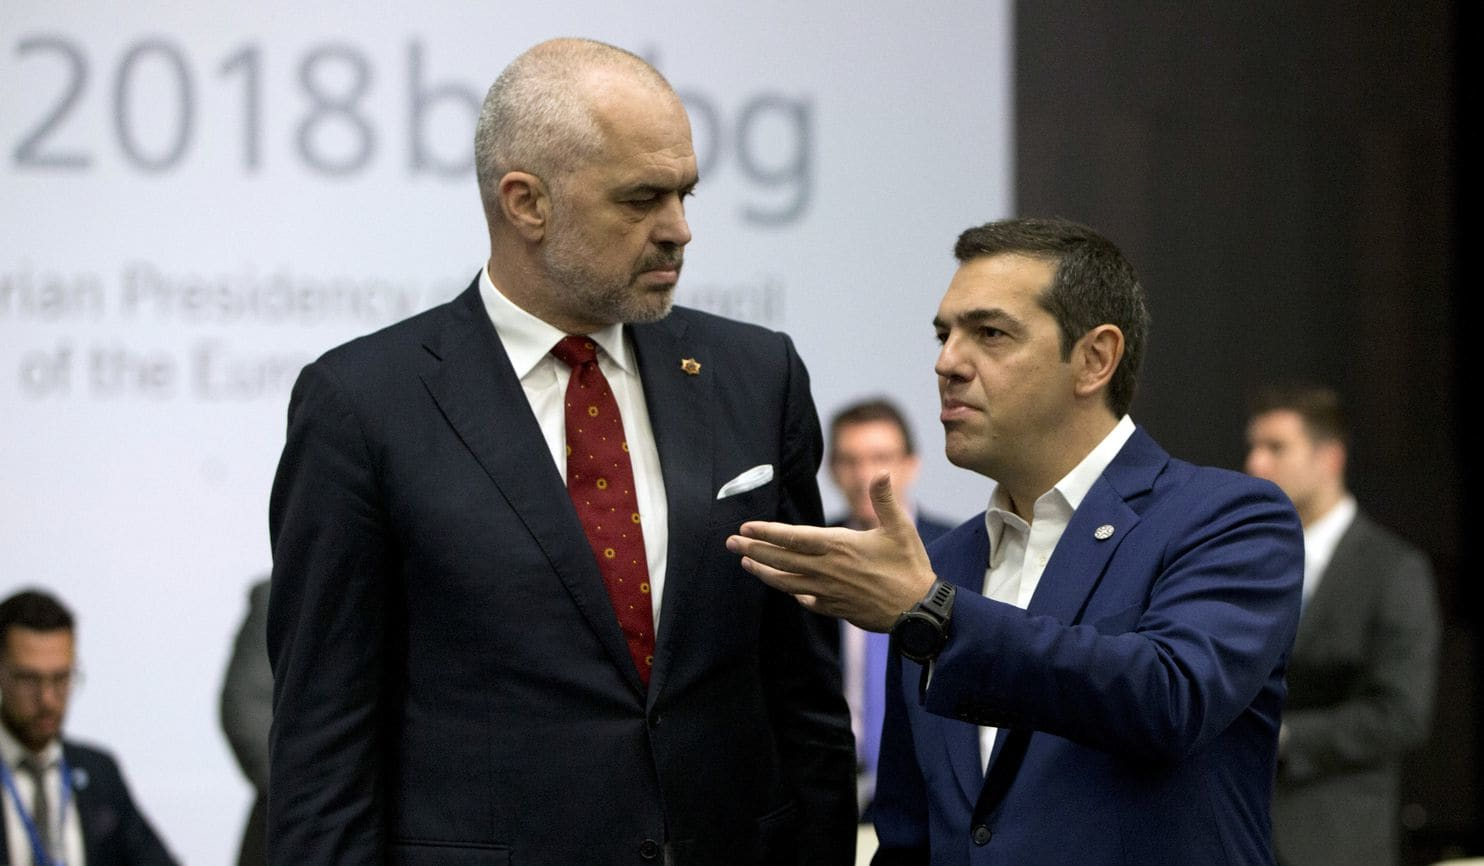 Albanian PM meets heads of the EU and the region in the Summit of Sofia